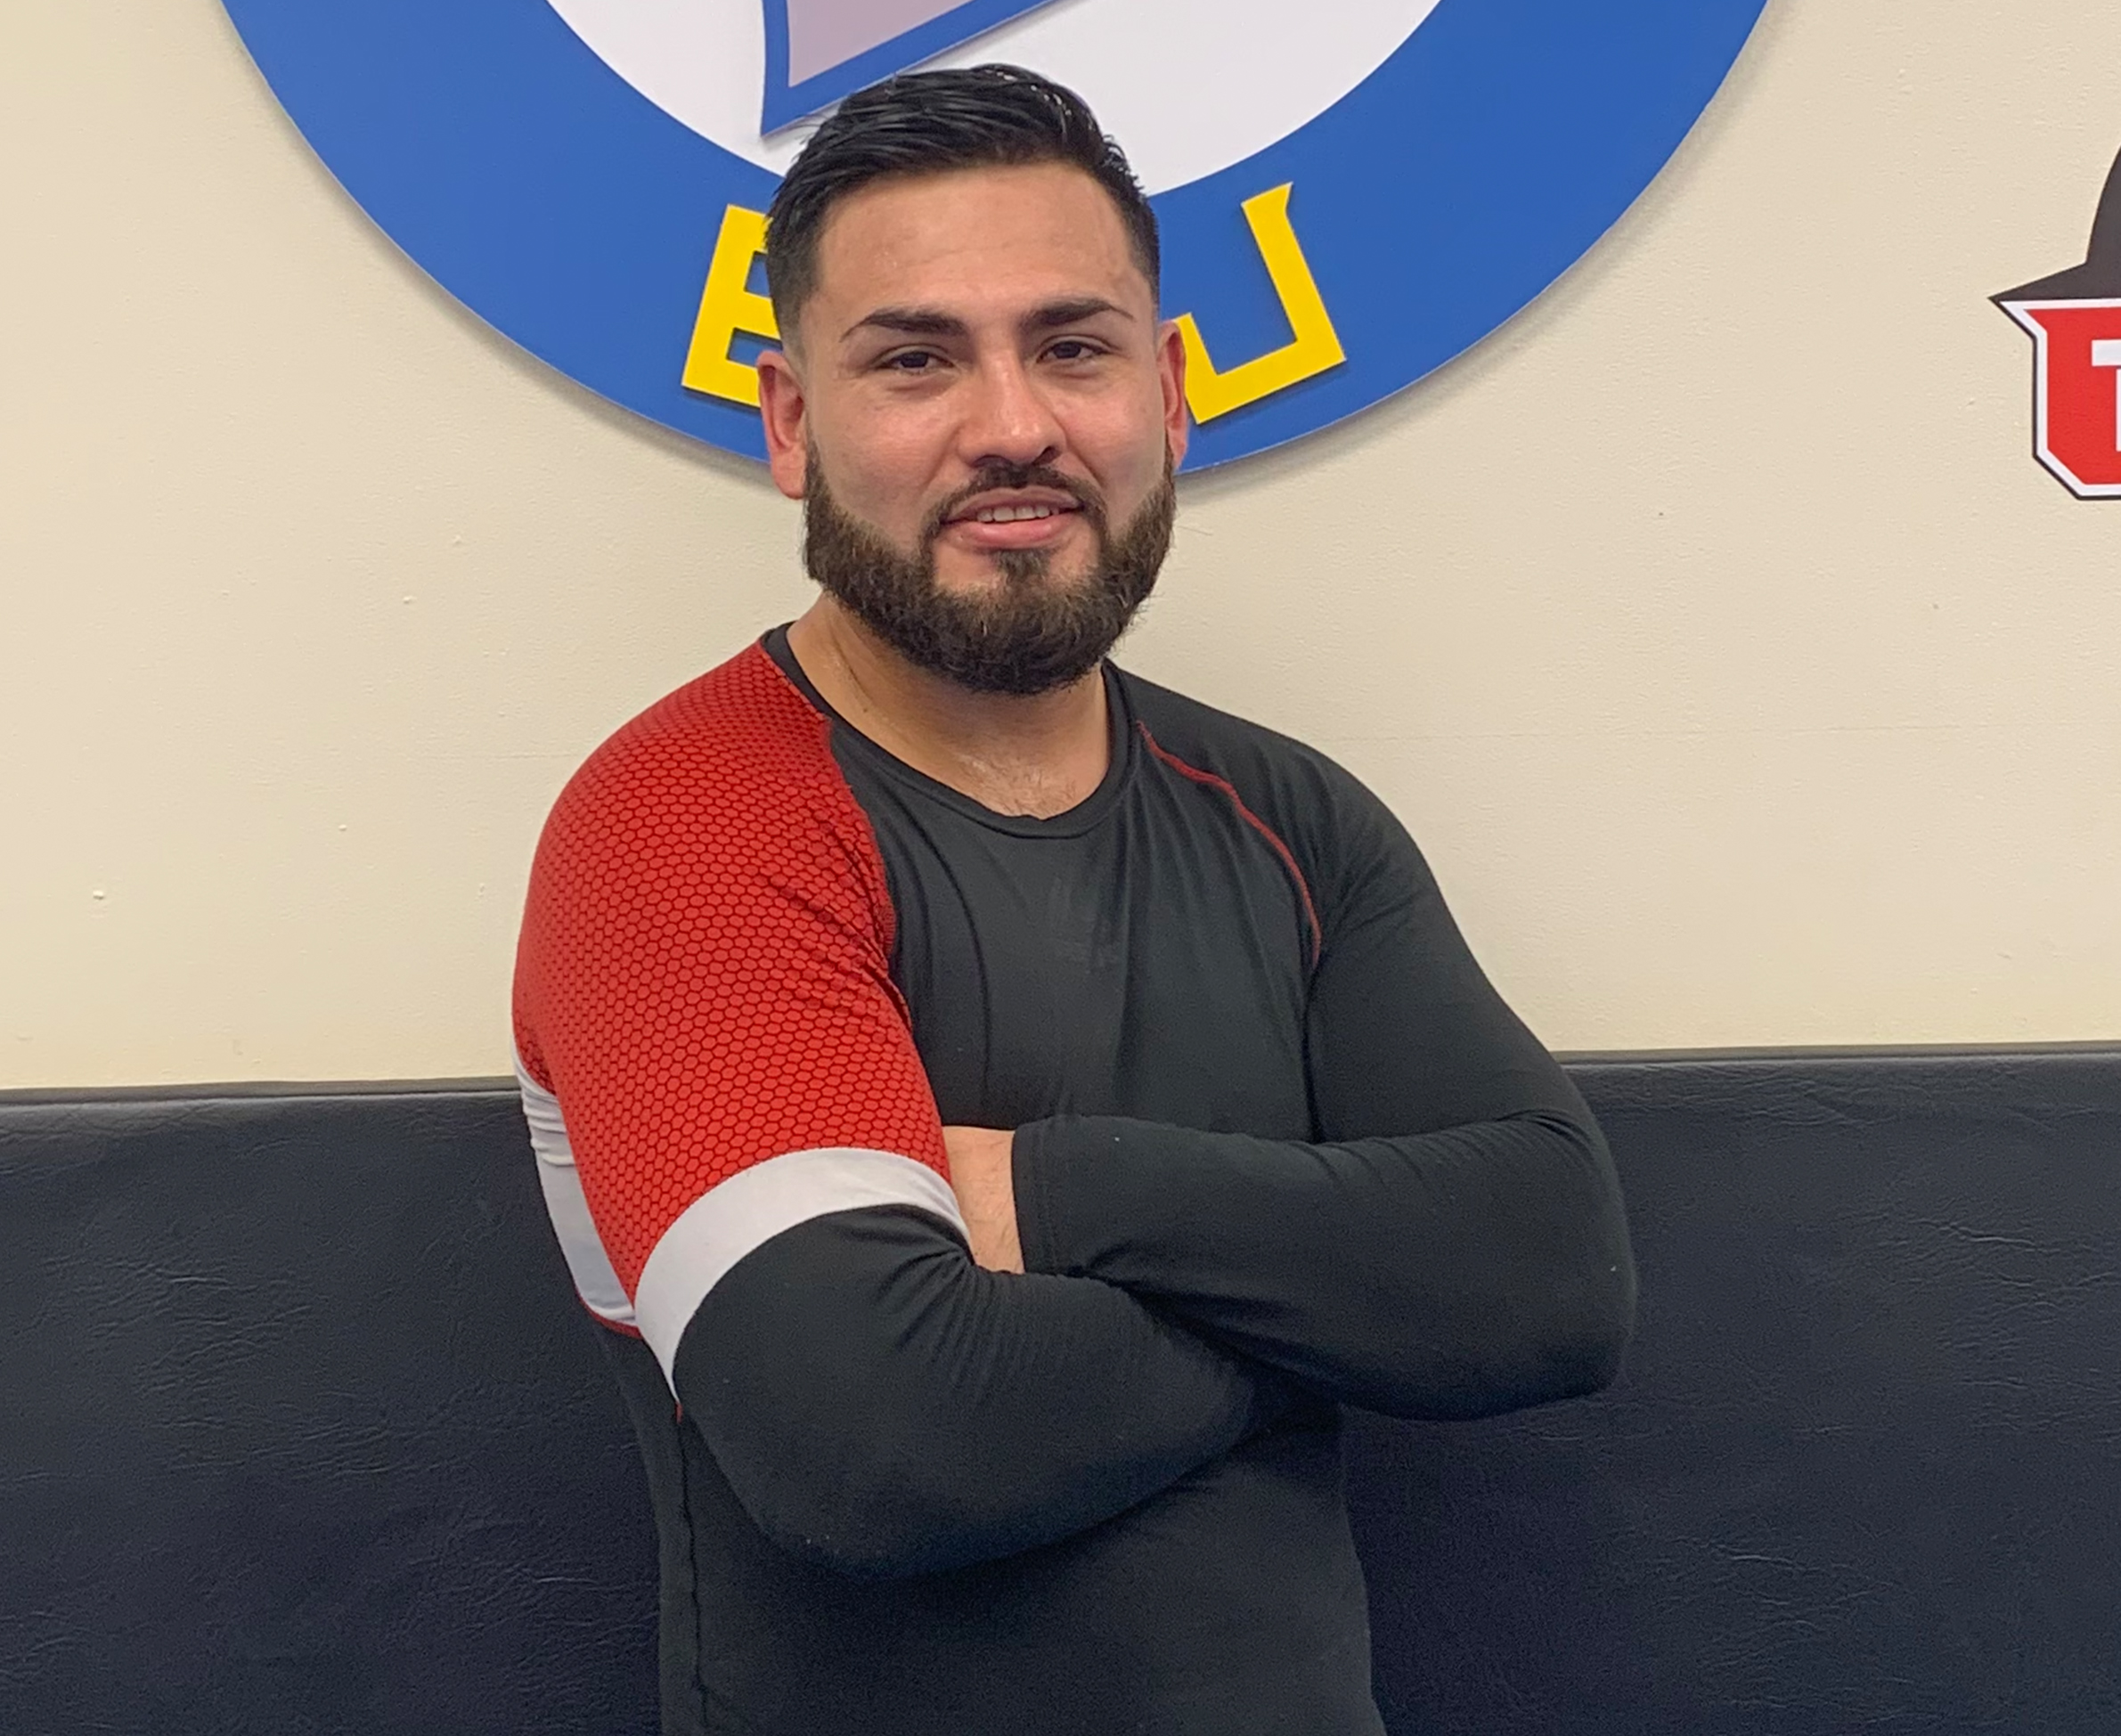 Photo of Gabriel Sejas the Striking Instructor.